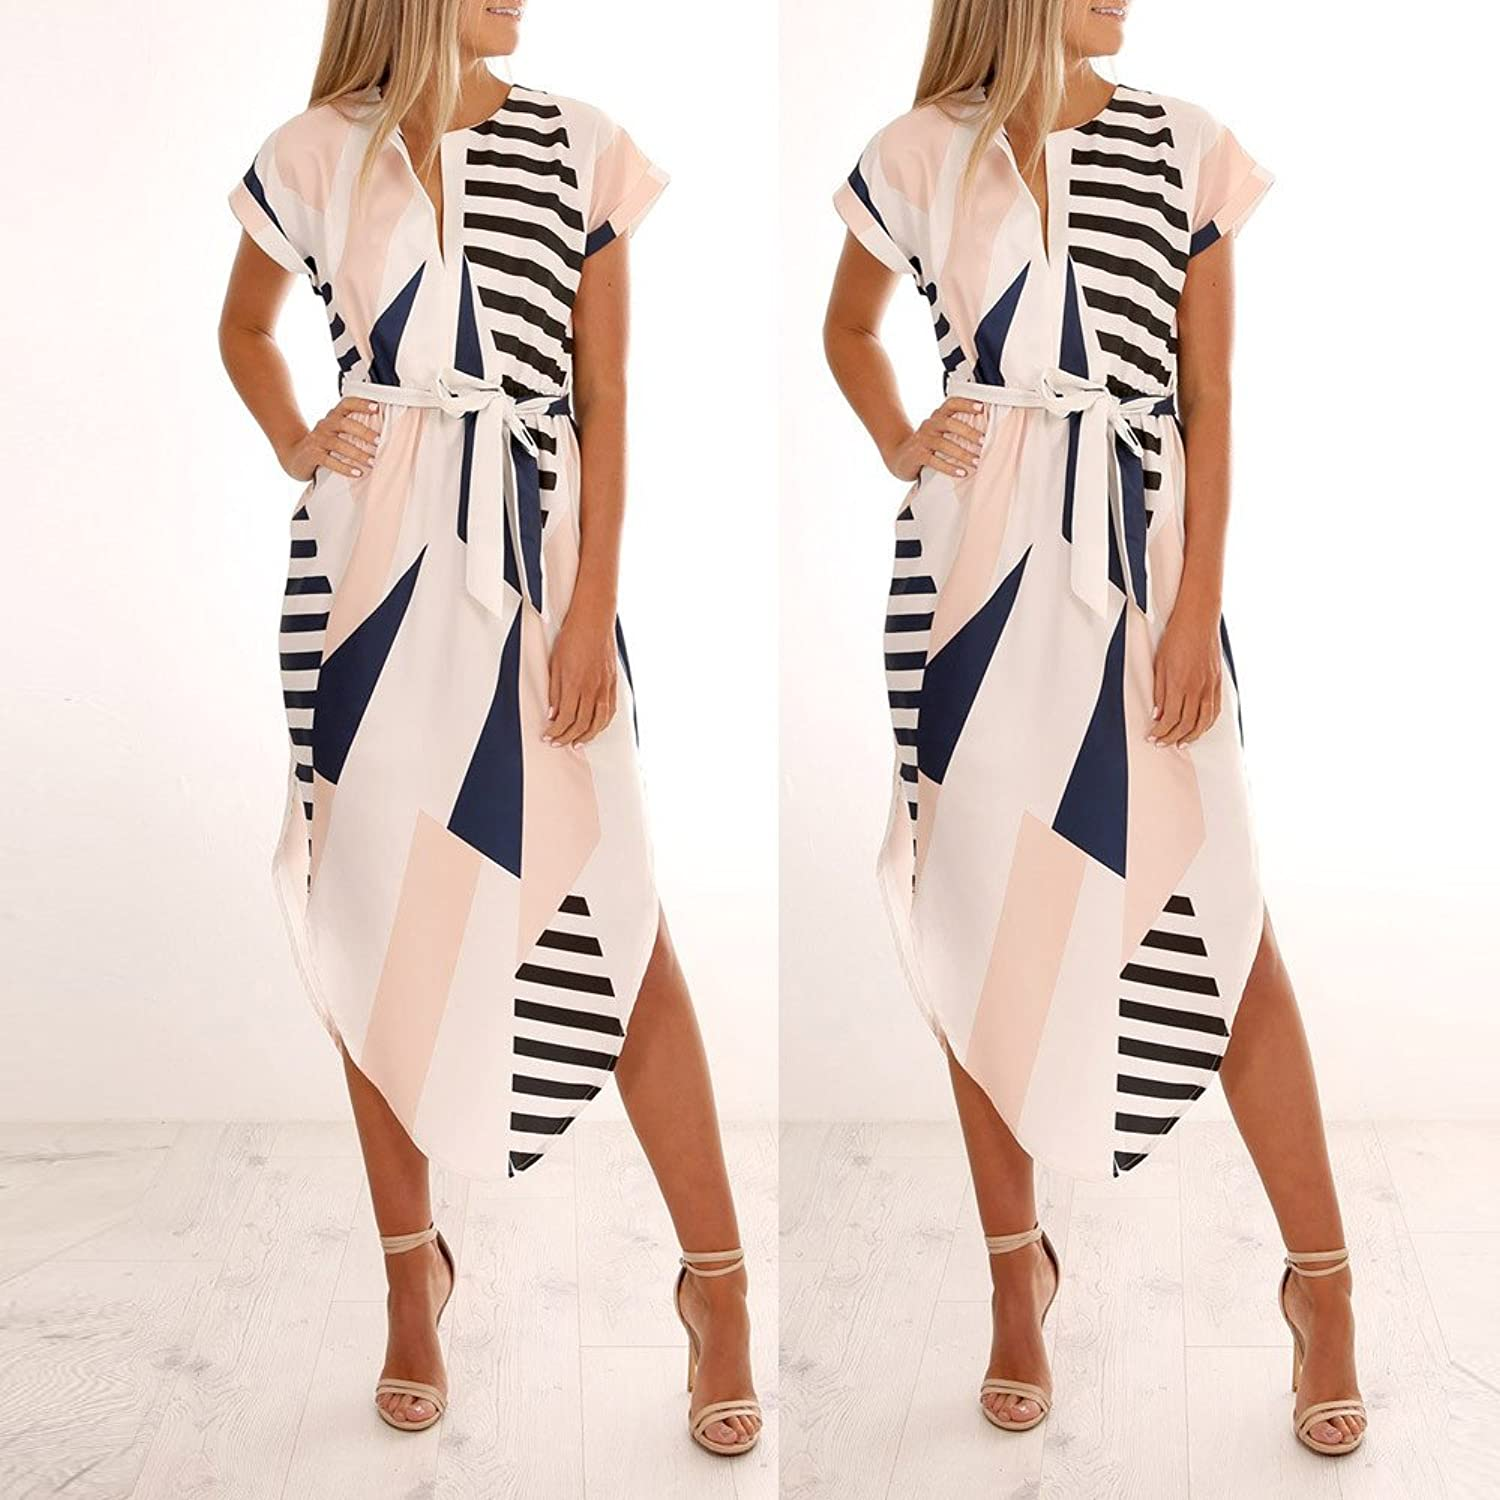 Hongxin Women Tunic Evening Party Dress Summer Irregular Boho Beach Dress Geometric Print Midi Robe Vestidos Mujer at Amazon Womens Clothing store: